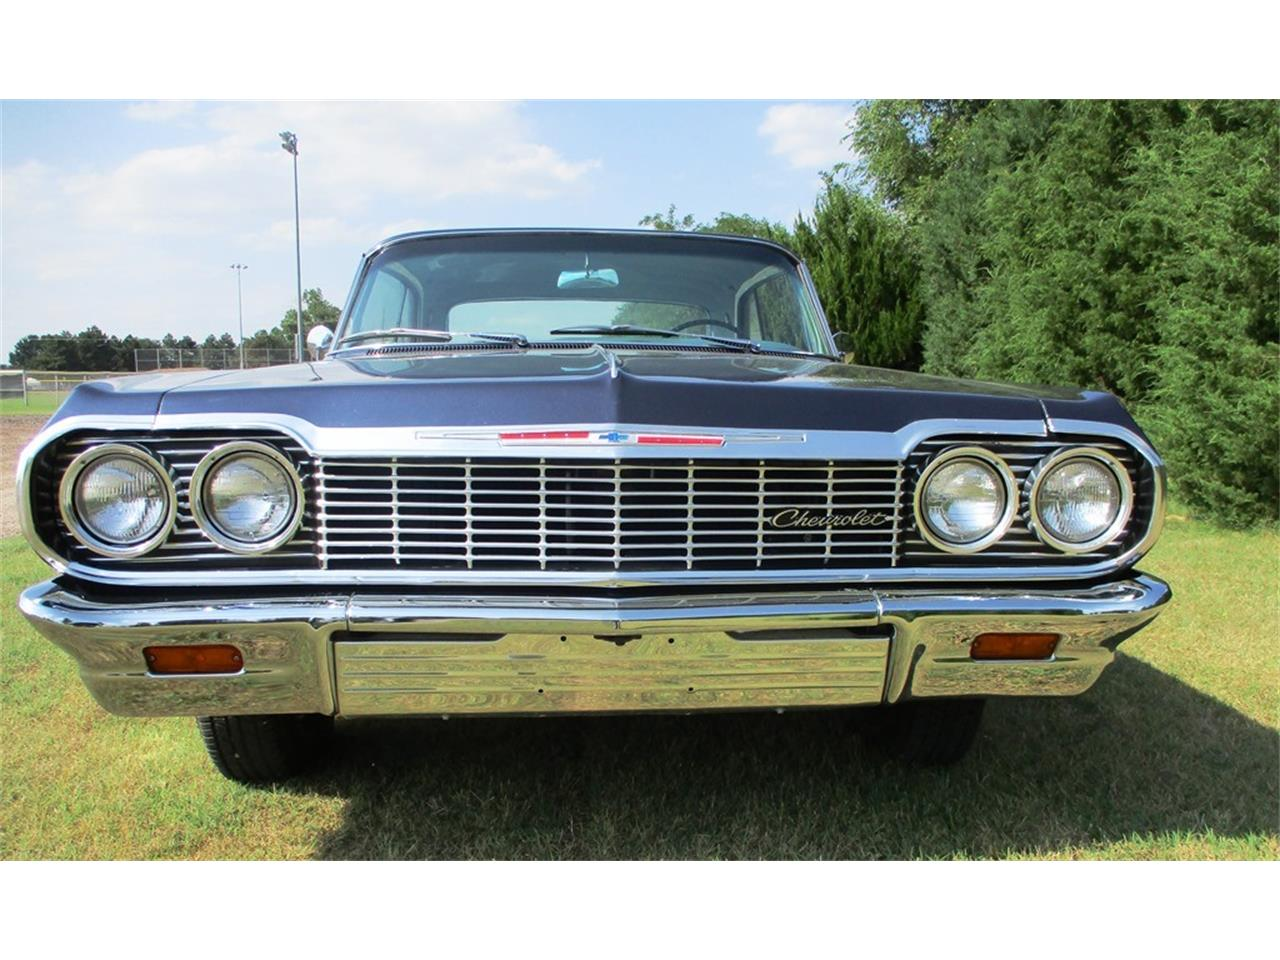 1964 Chevrolet Impala SS (CC-1388443) for sale in GREAT BEND, Kansas